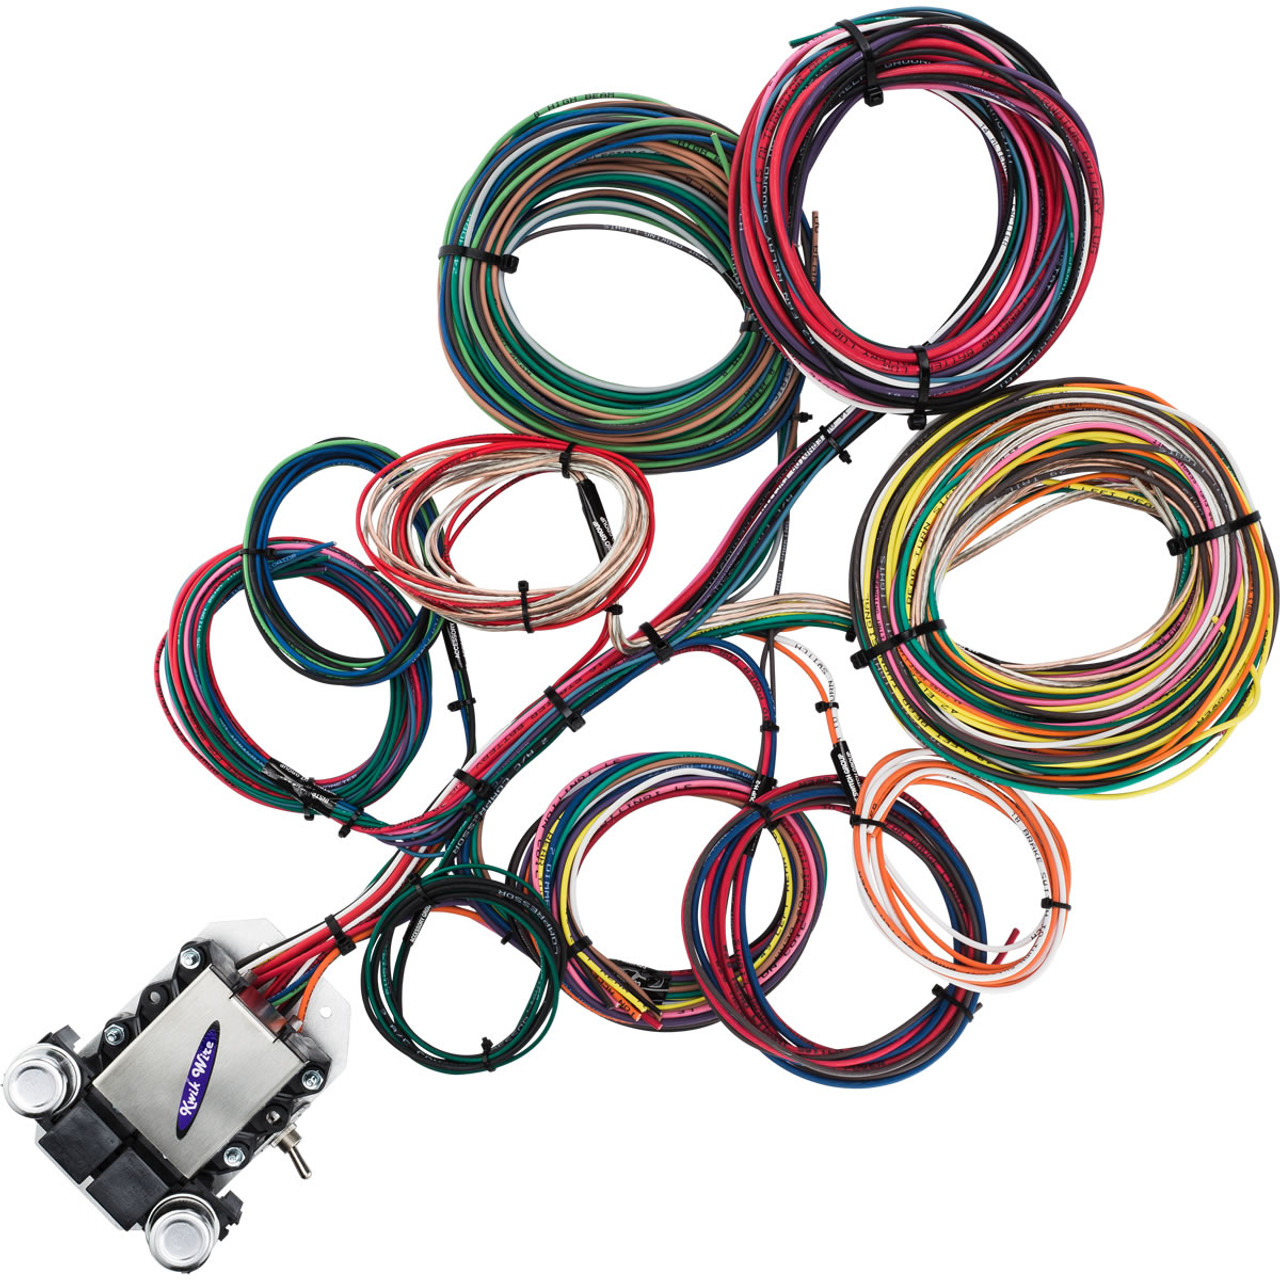 14 circuit wire harness kwikwire com electrify your ride rh kwikwire com Quickwire Communications Quickwire Electric